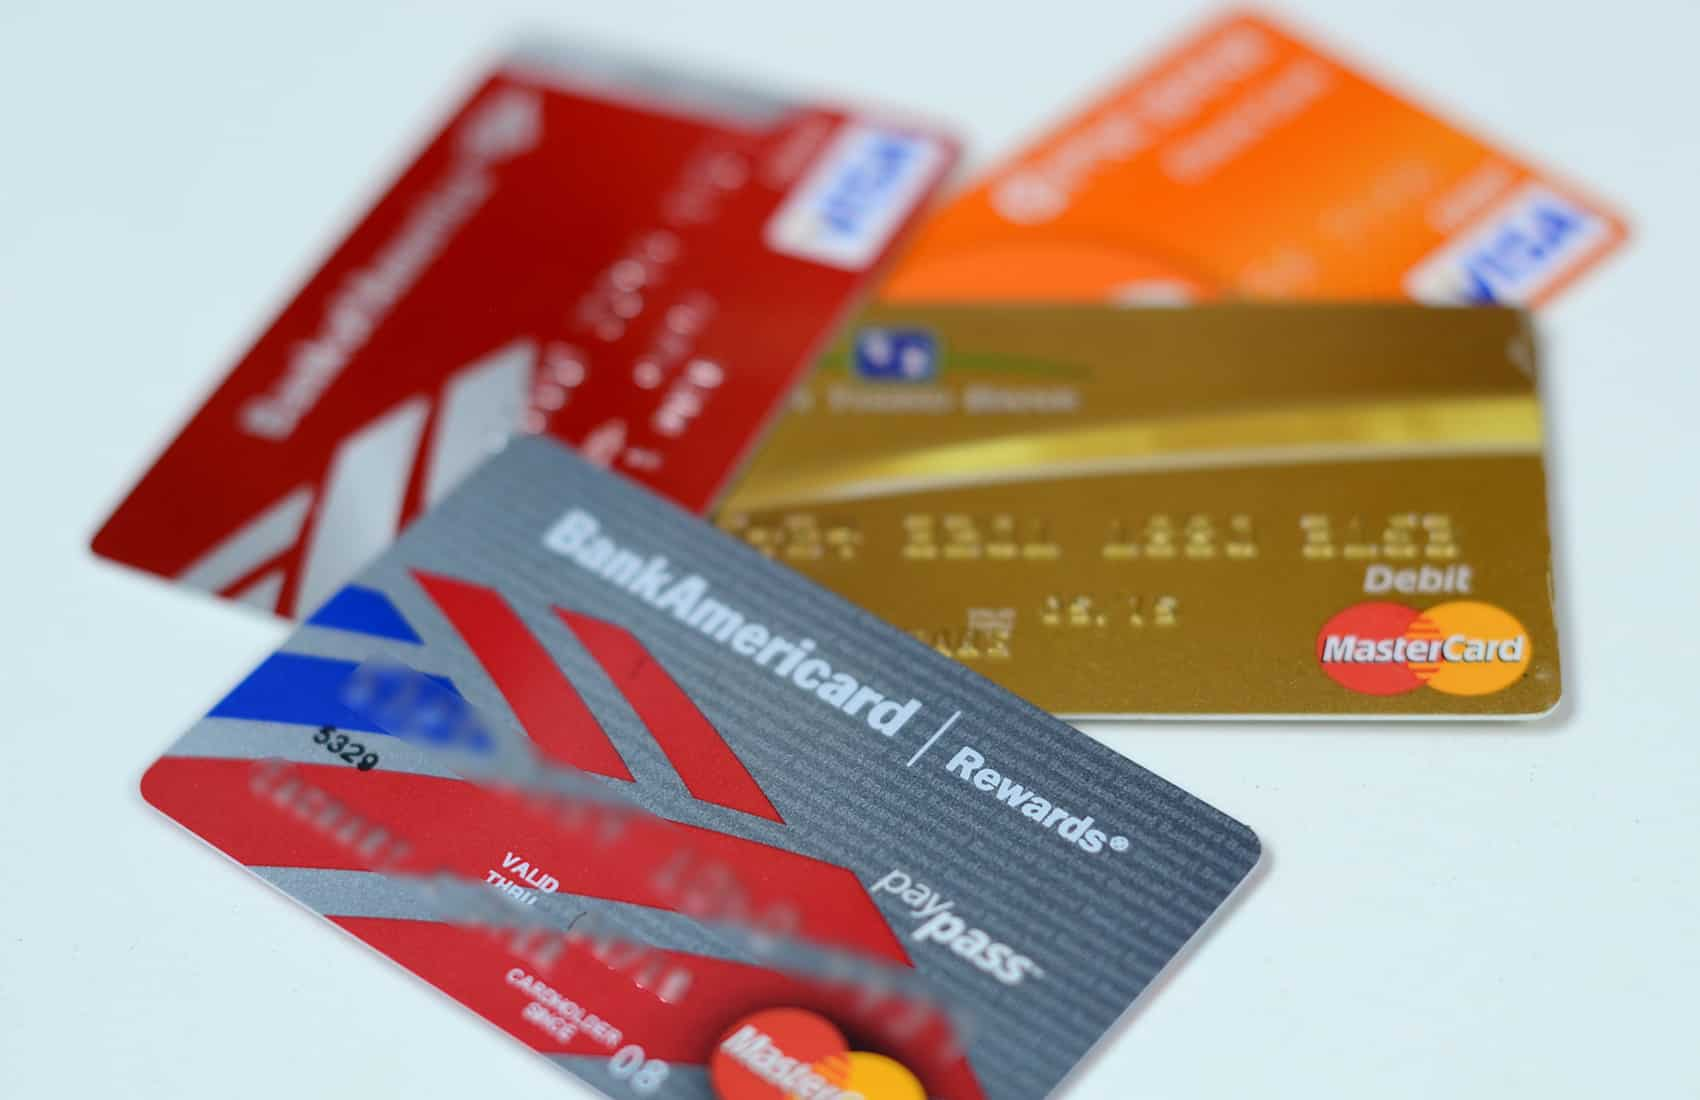 Credit, debit cards